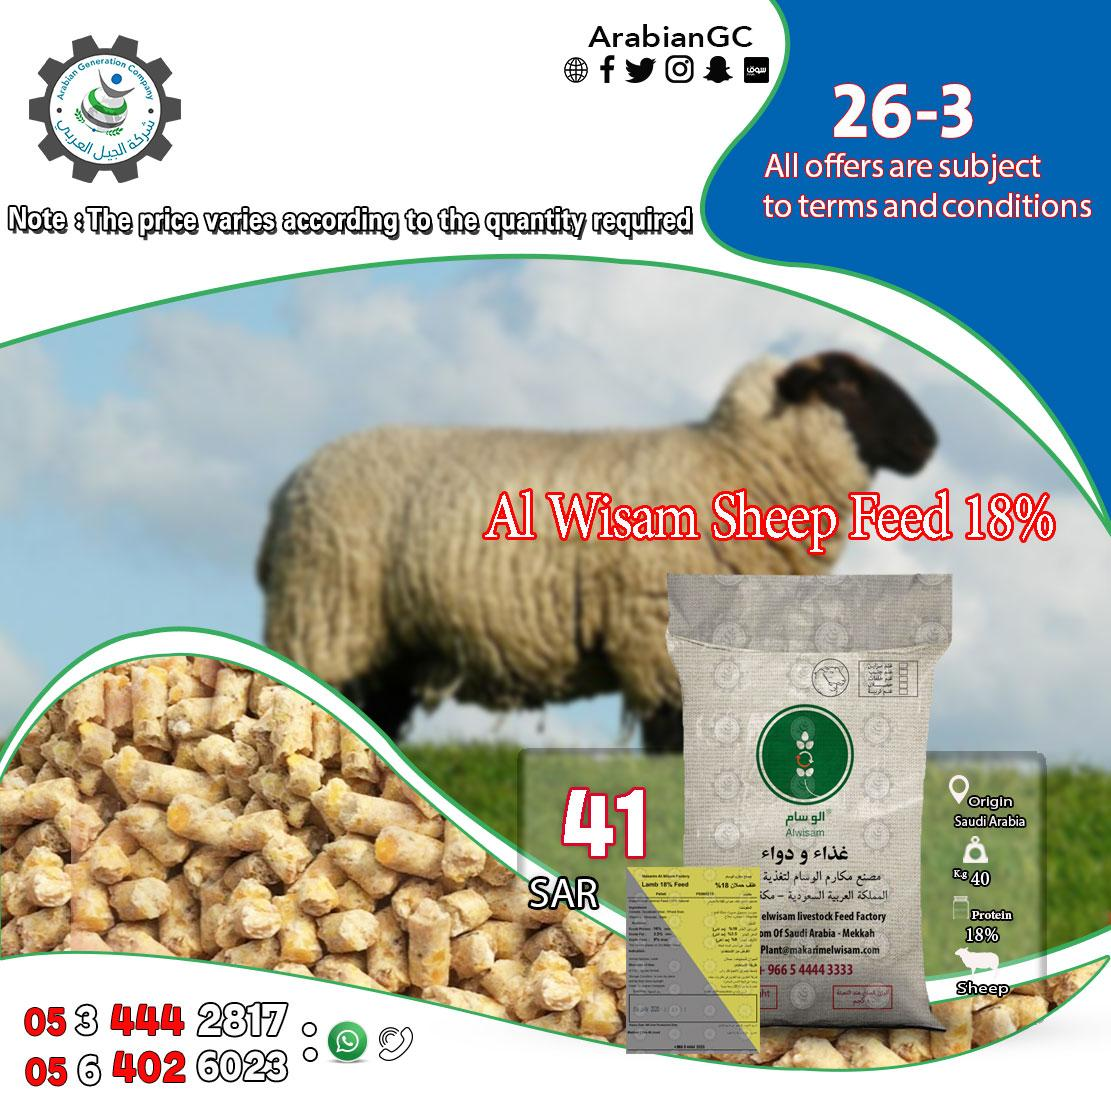 Wisam sheep feed sale from d.php?hash=IRMG8LKBX